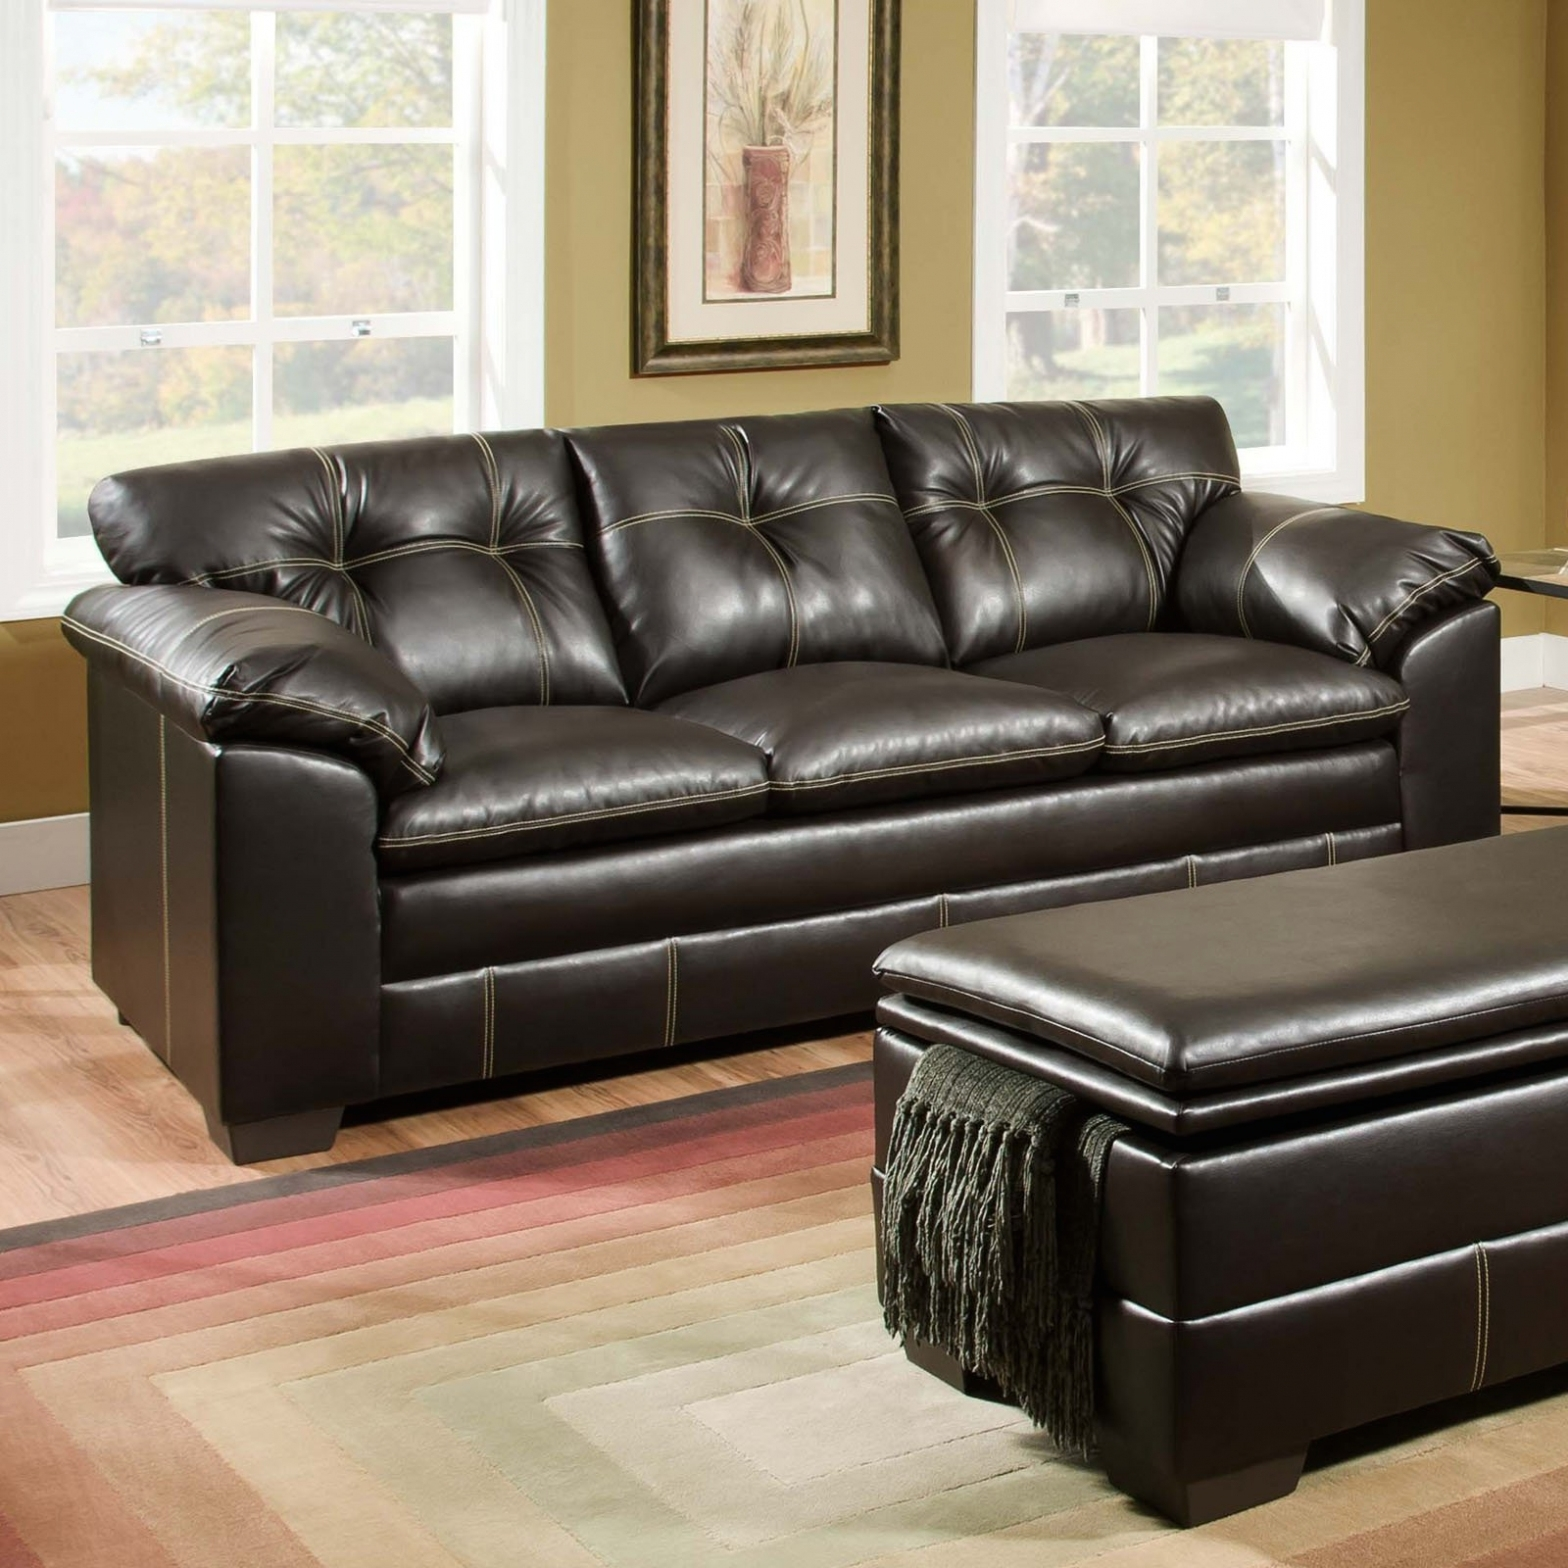 Popular Furniture: Sofas : Fabulous Leather Loveseat Recliner Sectional Throughout Sectional Sofas At Big Lots (Gallery 11 of 20)